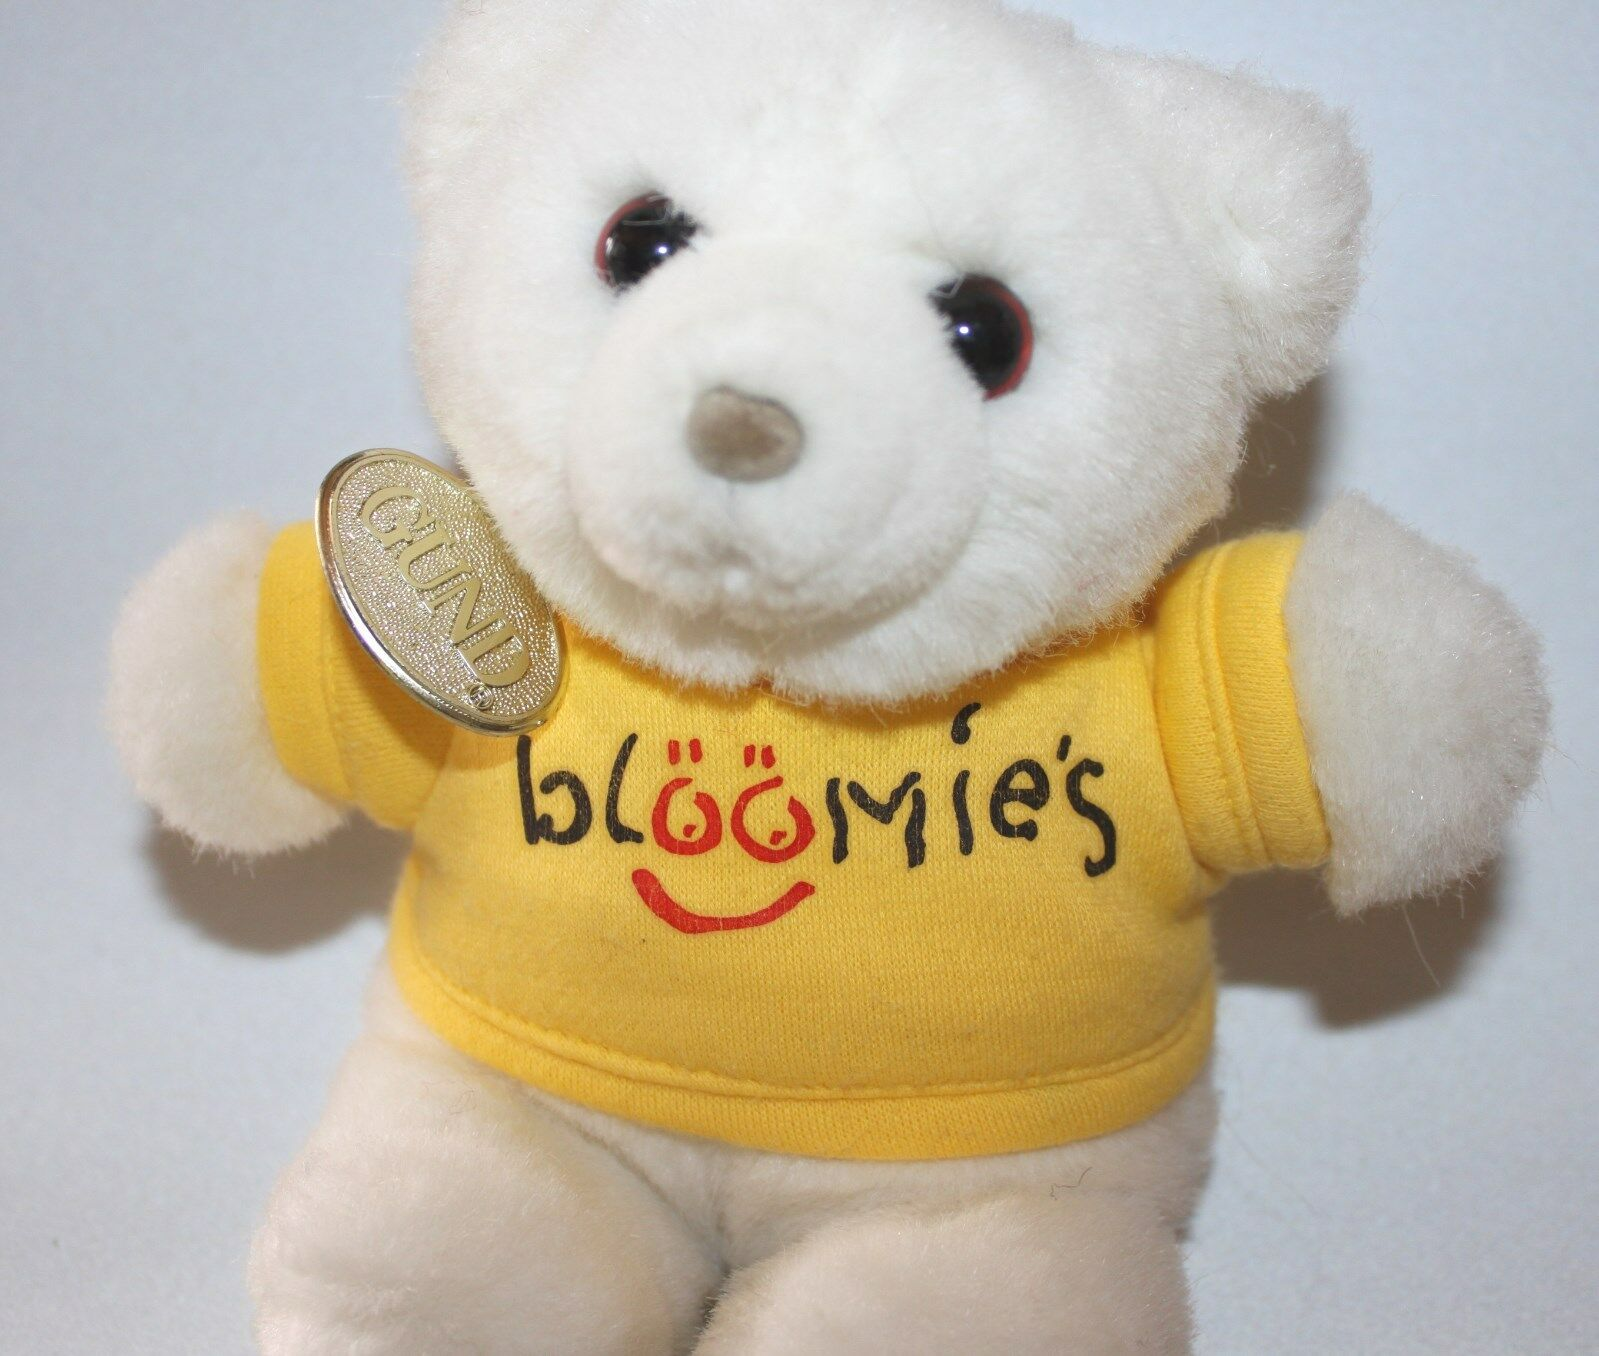 Vtg Bloomie's Gund Bear Plush Stuffed Animal Gelb Shirt & Tag Bloomingdale's